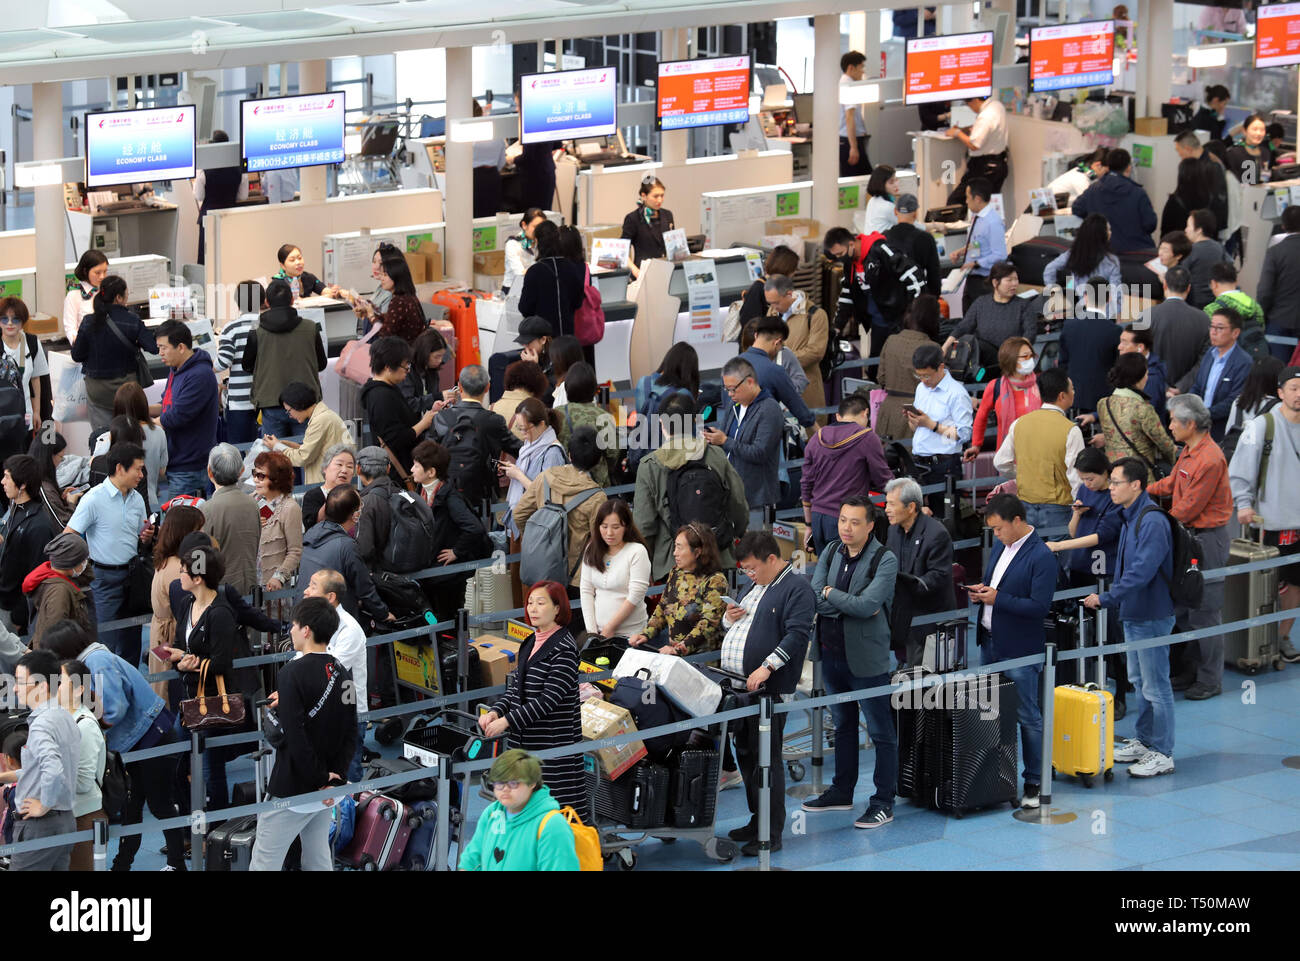 Tokyo, Japan. 19th Apr, 2019. The international terminal of Tokyo's Haneda airport is crowded with tourists to travel abroad on Friday, April 19, 2019. Japan will have ten-day Golden Week holidays from April 27 through May 6 since Emperor Akihito will abdicate on April 30 and Crown Prince Naruhito will ascend the throne on May 1. Credit: Yoshio Tsunoda/AFLO/Alamy Live News Stock Photo